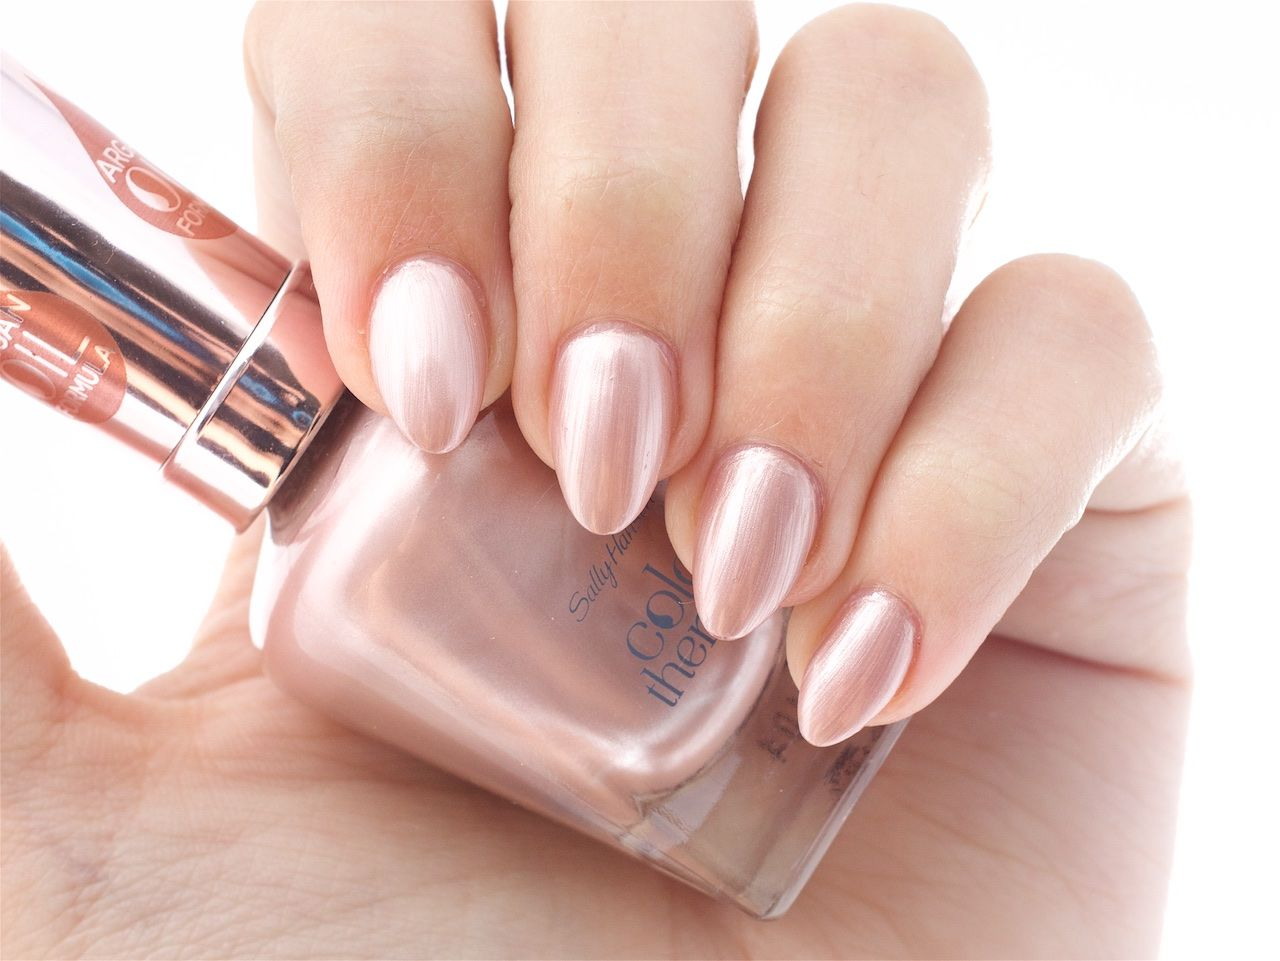 Colour therapy for marriage - Sally Hansen Color Therapy In Powder Room